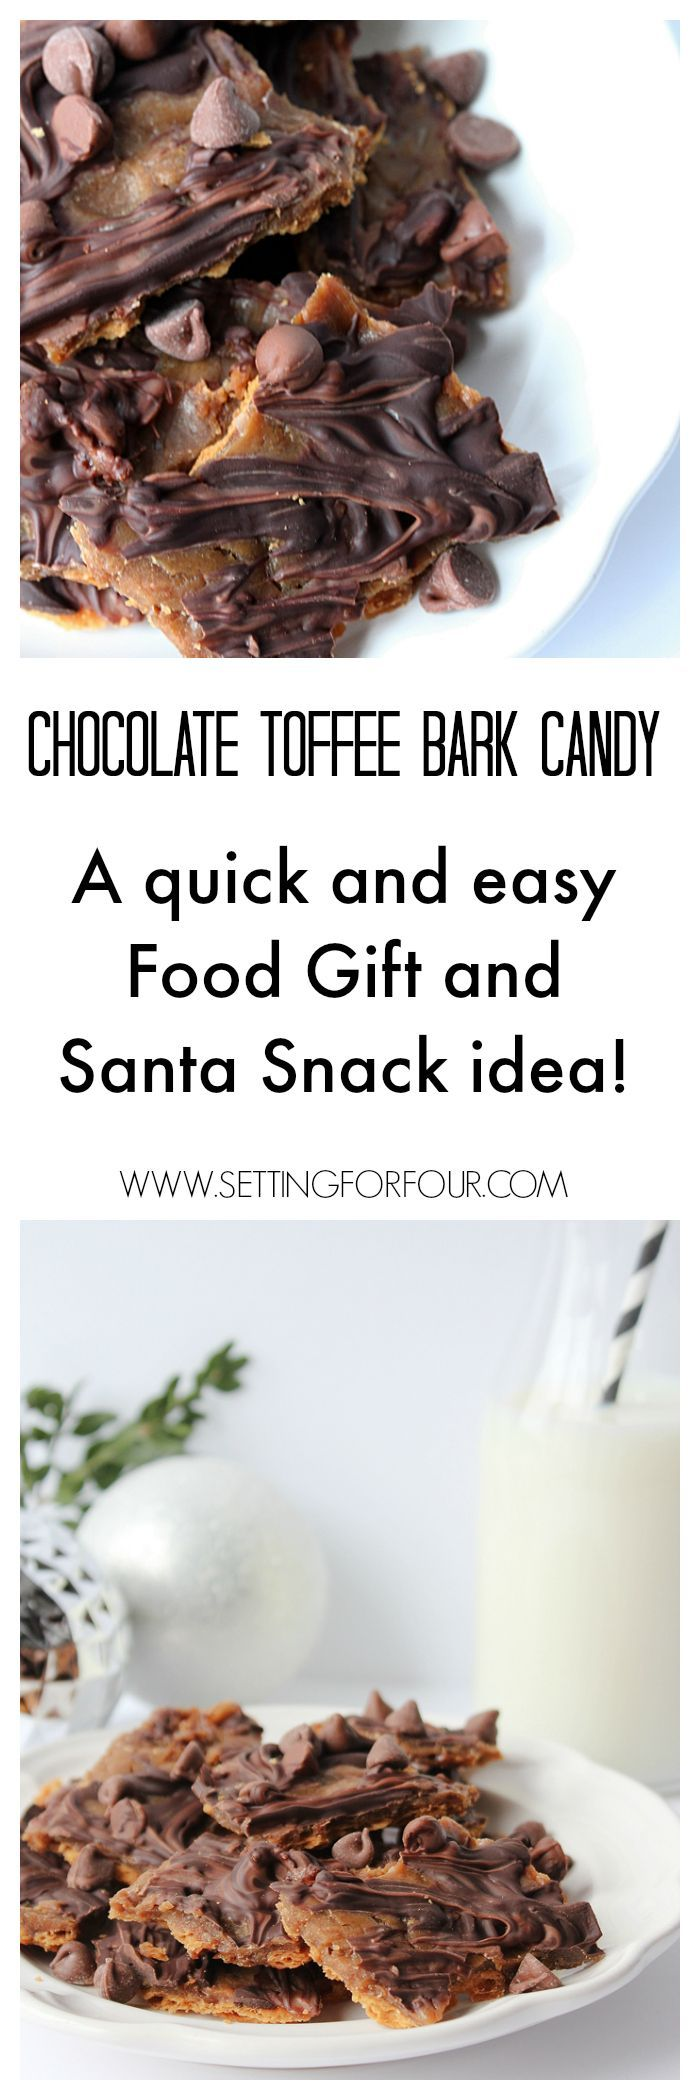 What a delicious and quick to make sweet treat recipe for Saltine Chocolate Toffee Bark Candy! Great DIY food gift and Santa Snack idea! www.setttingforfour.com